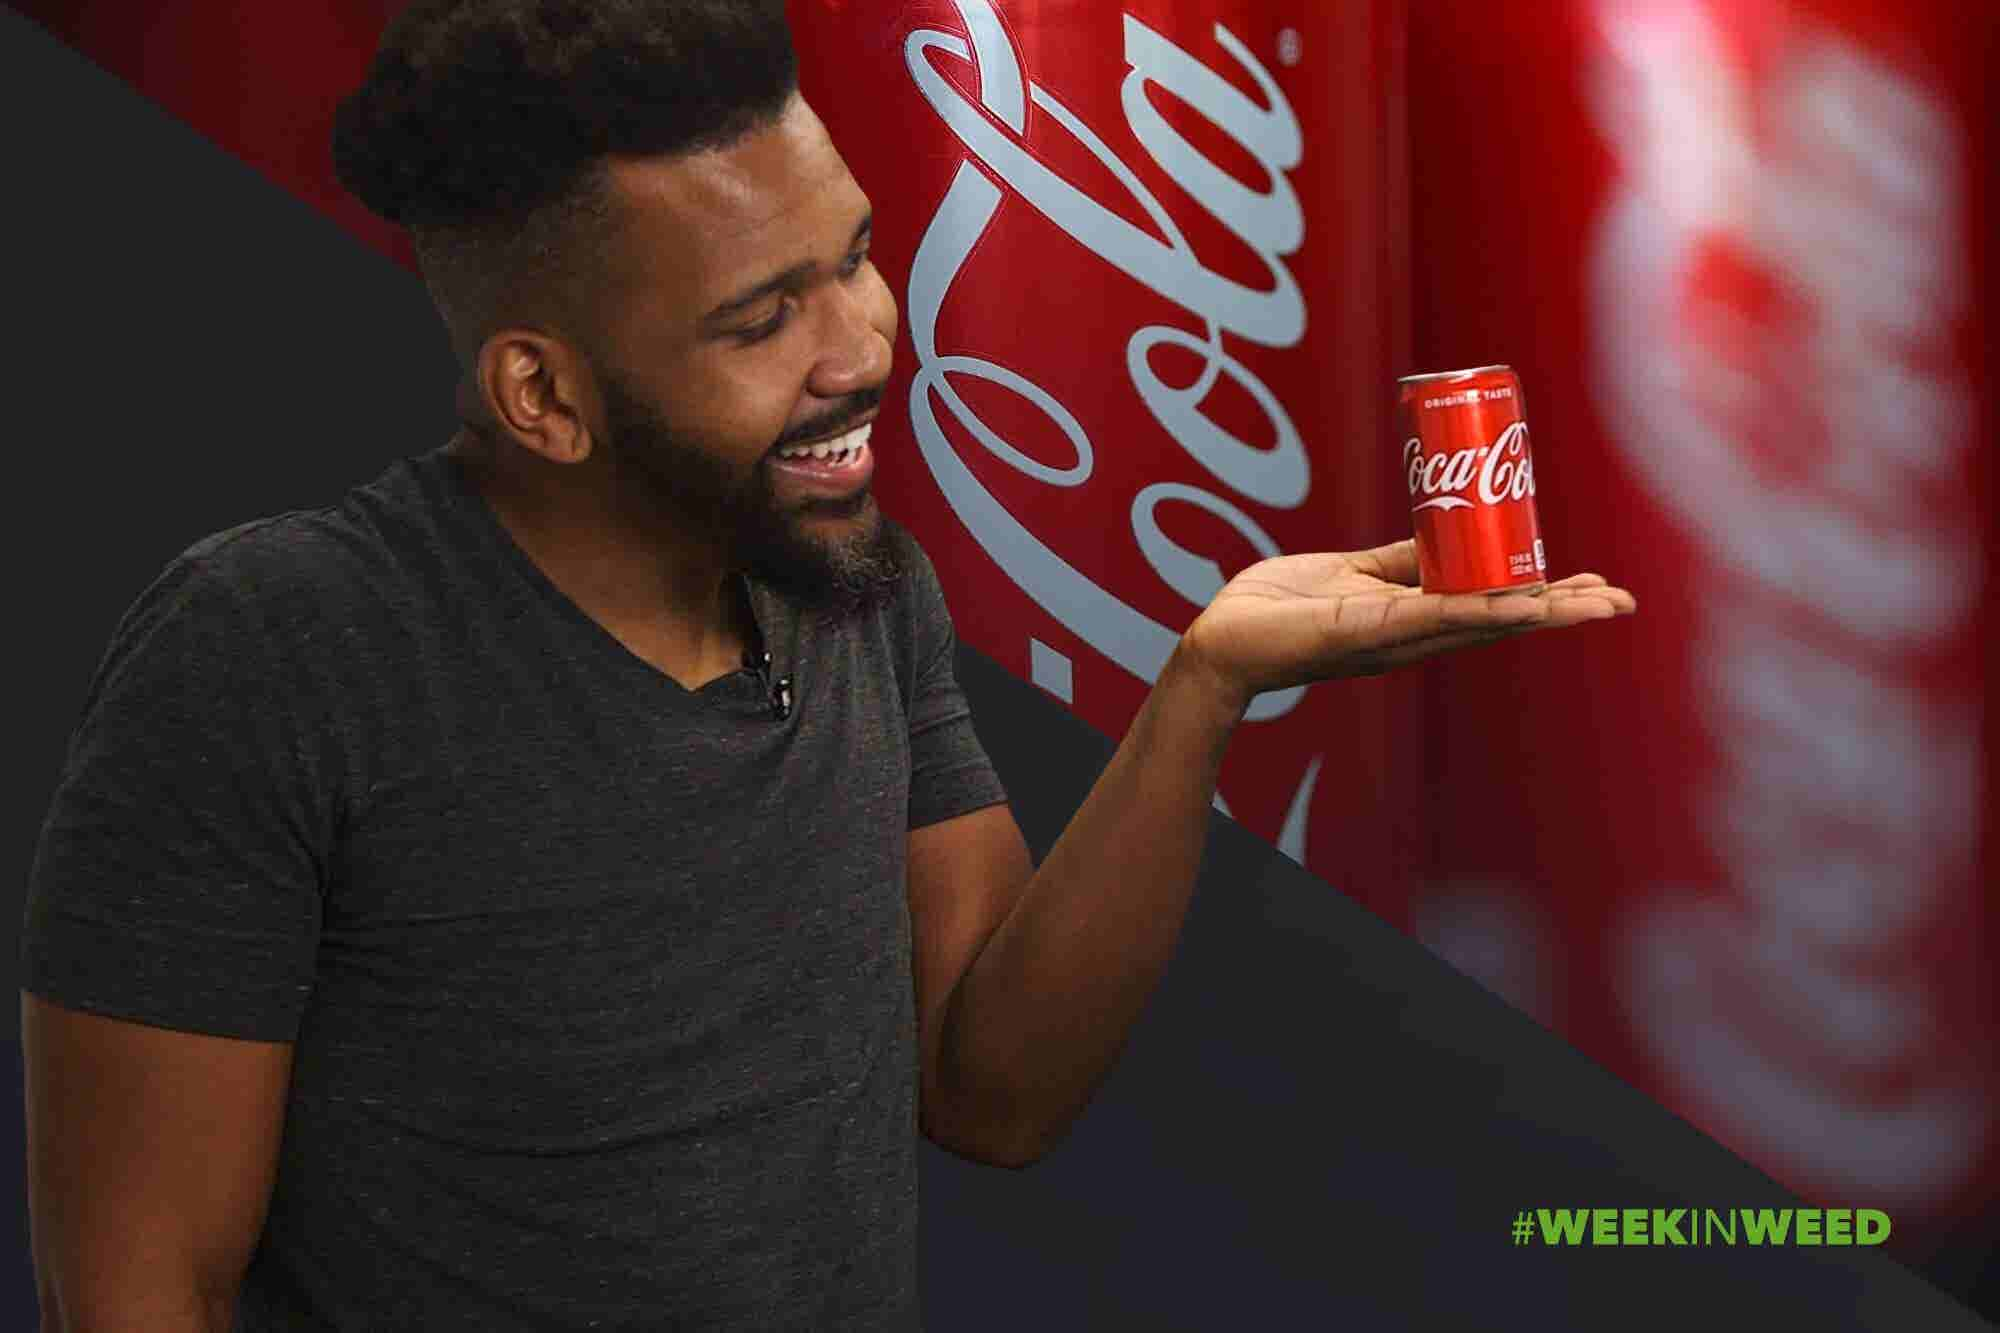 This Week in Weed: Coca Cola Considers Cannabis!